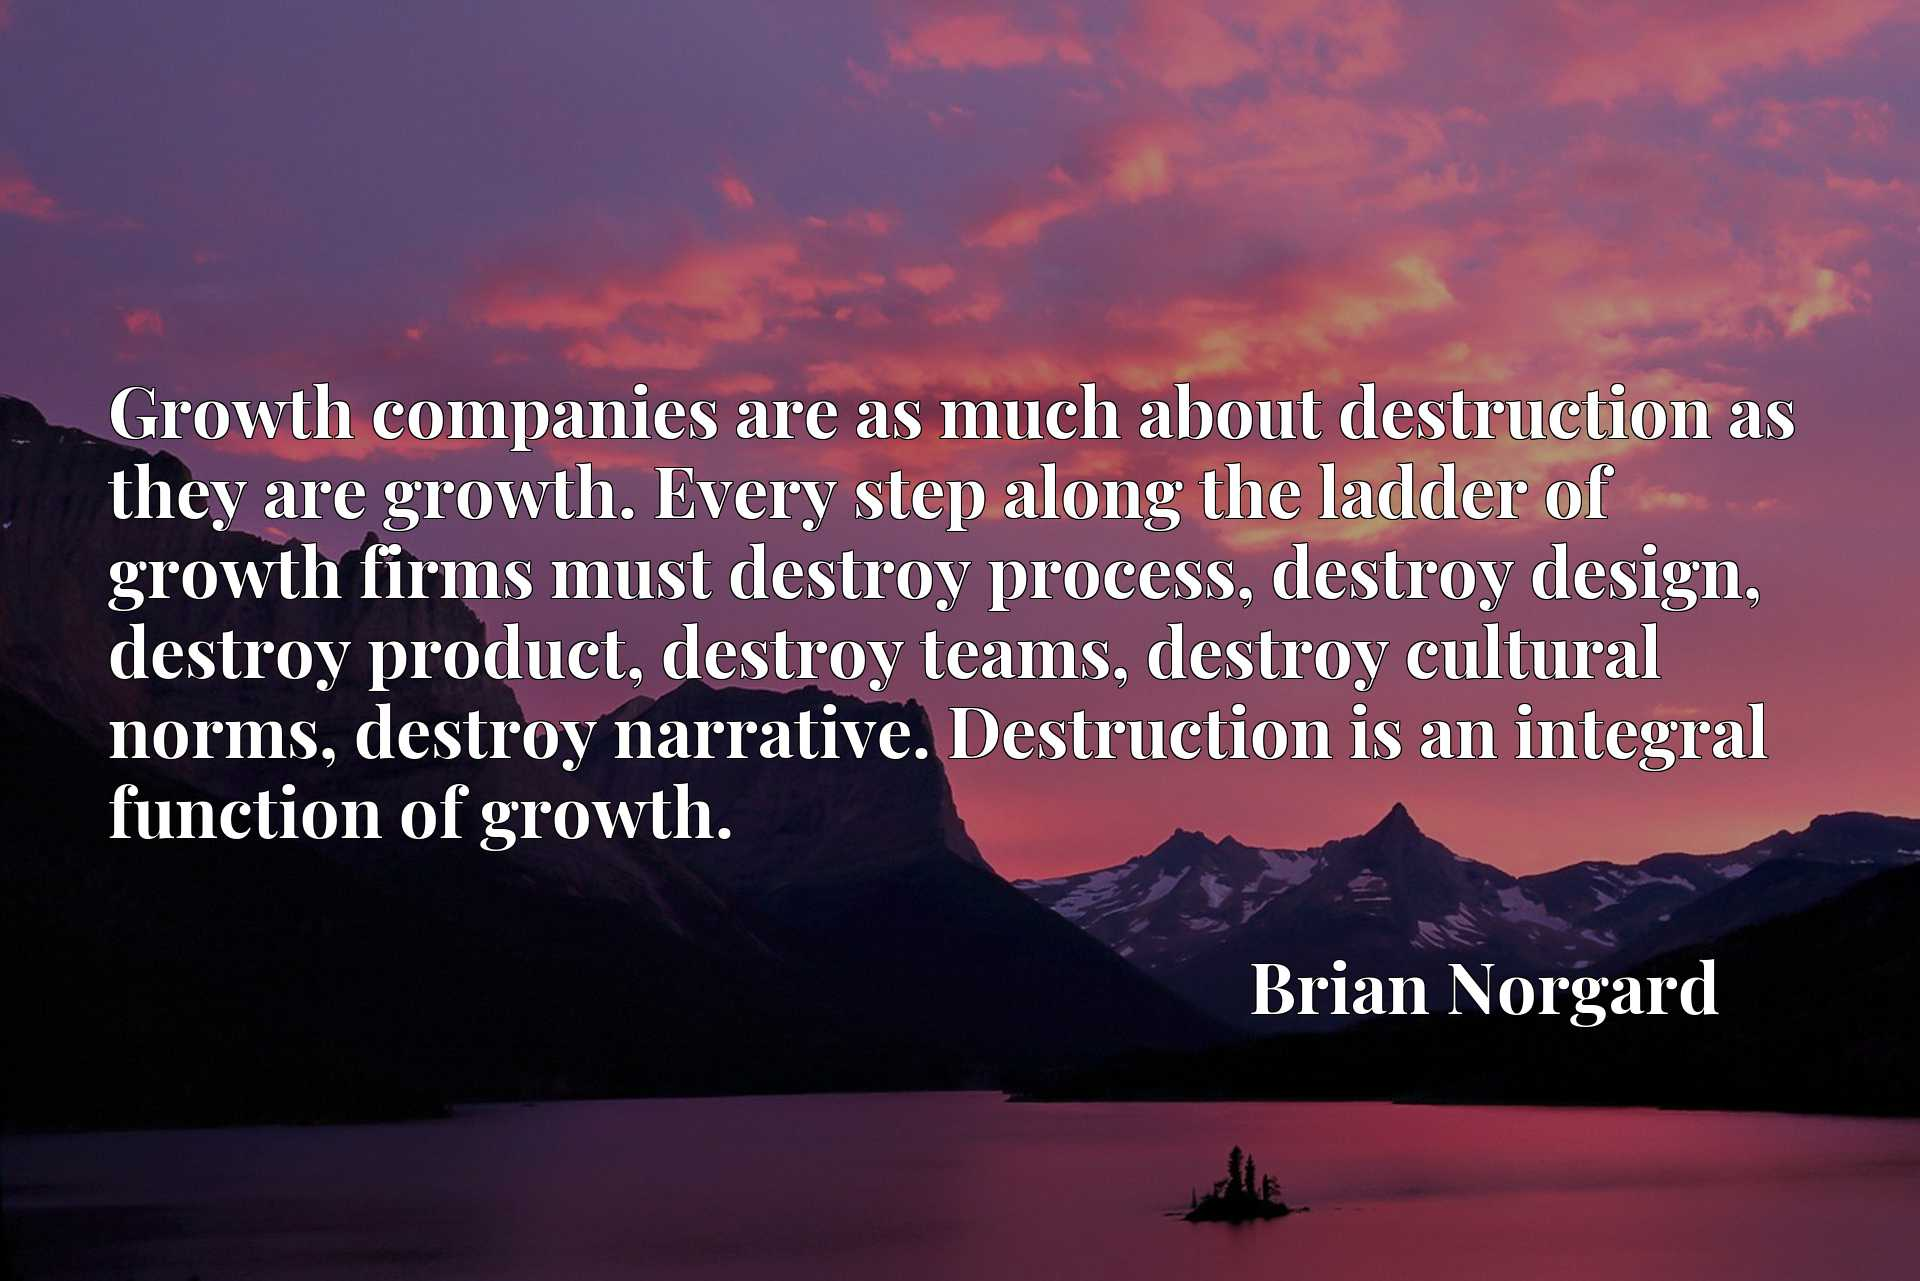 Growth companies are as much about destruction as they are growth. Every step along the ladder of growth firms must destroy process, destroy design, destroy product, destroy teams, destroy cultural norms, destroy narrative. Destruction is an integral function of growth.